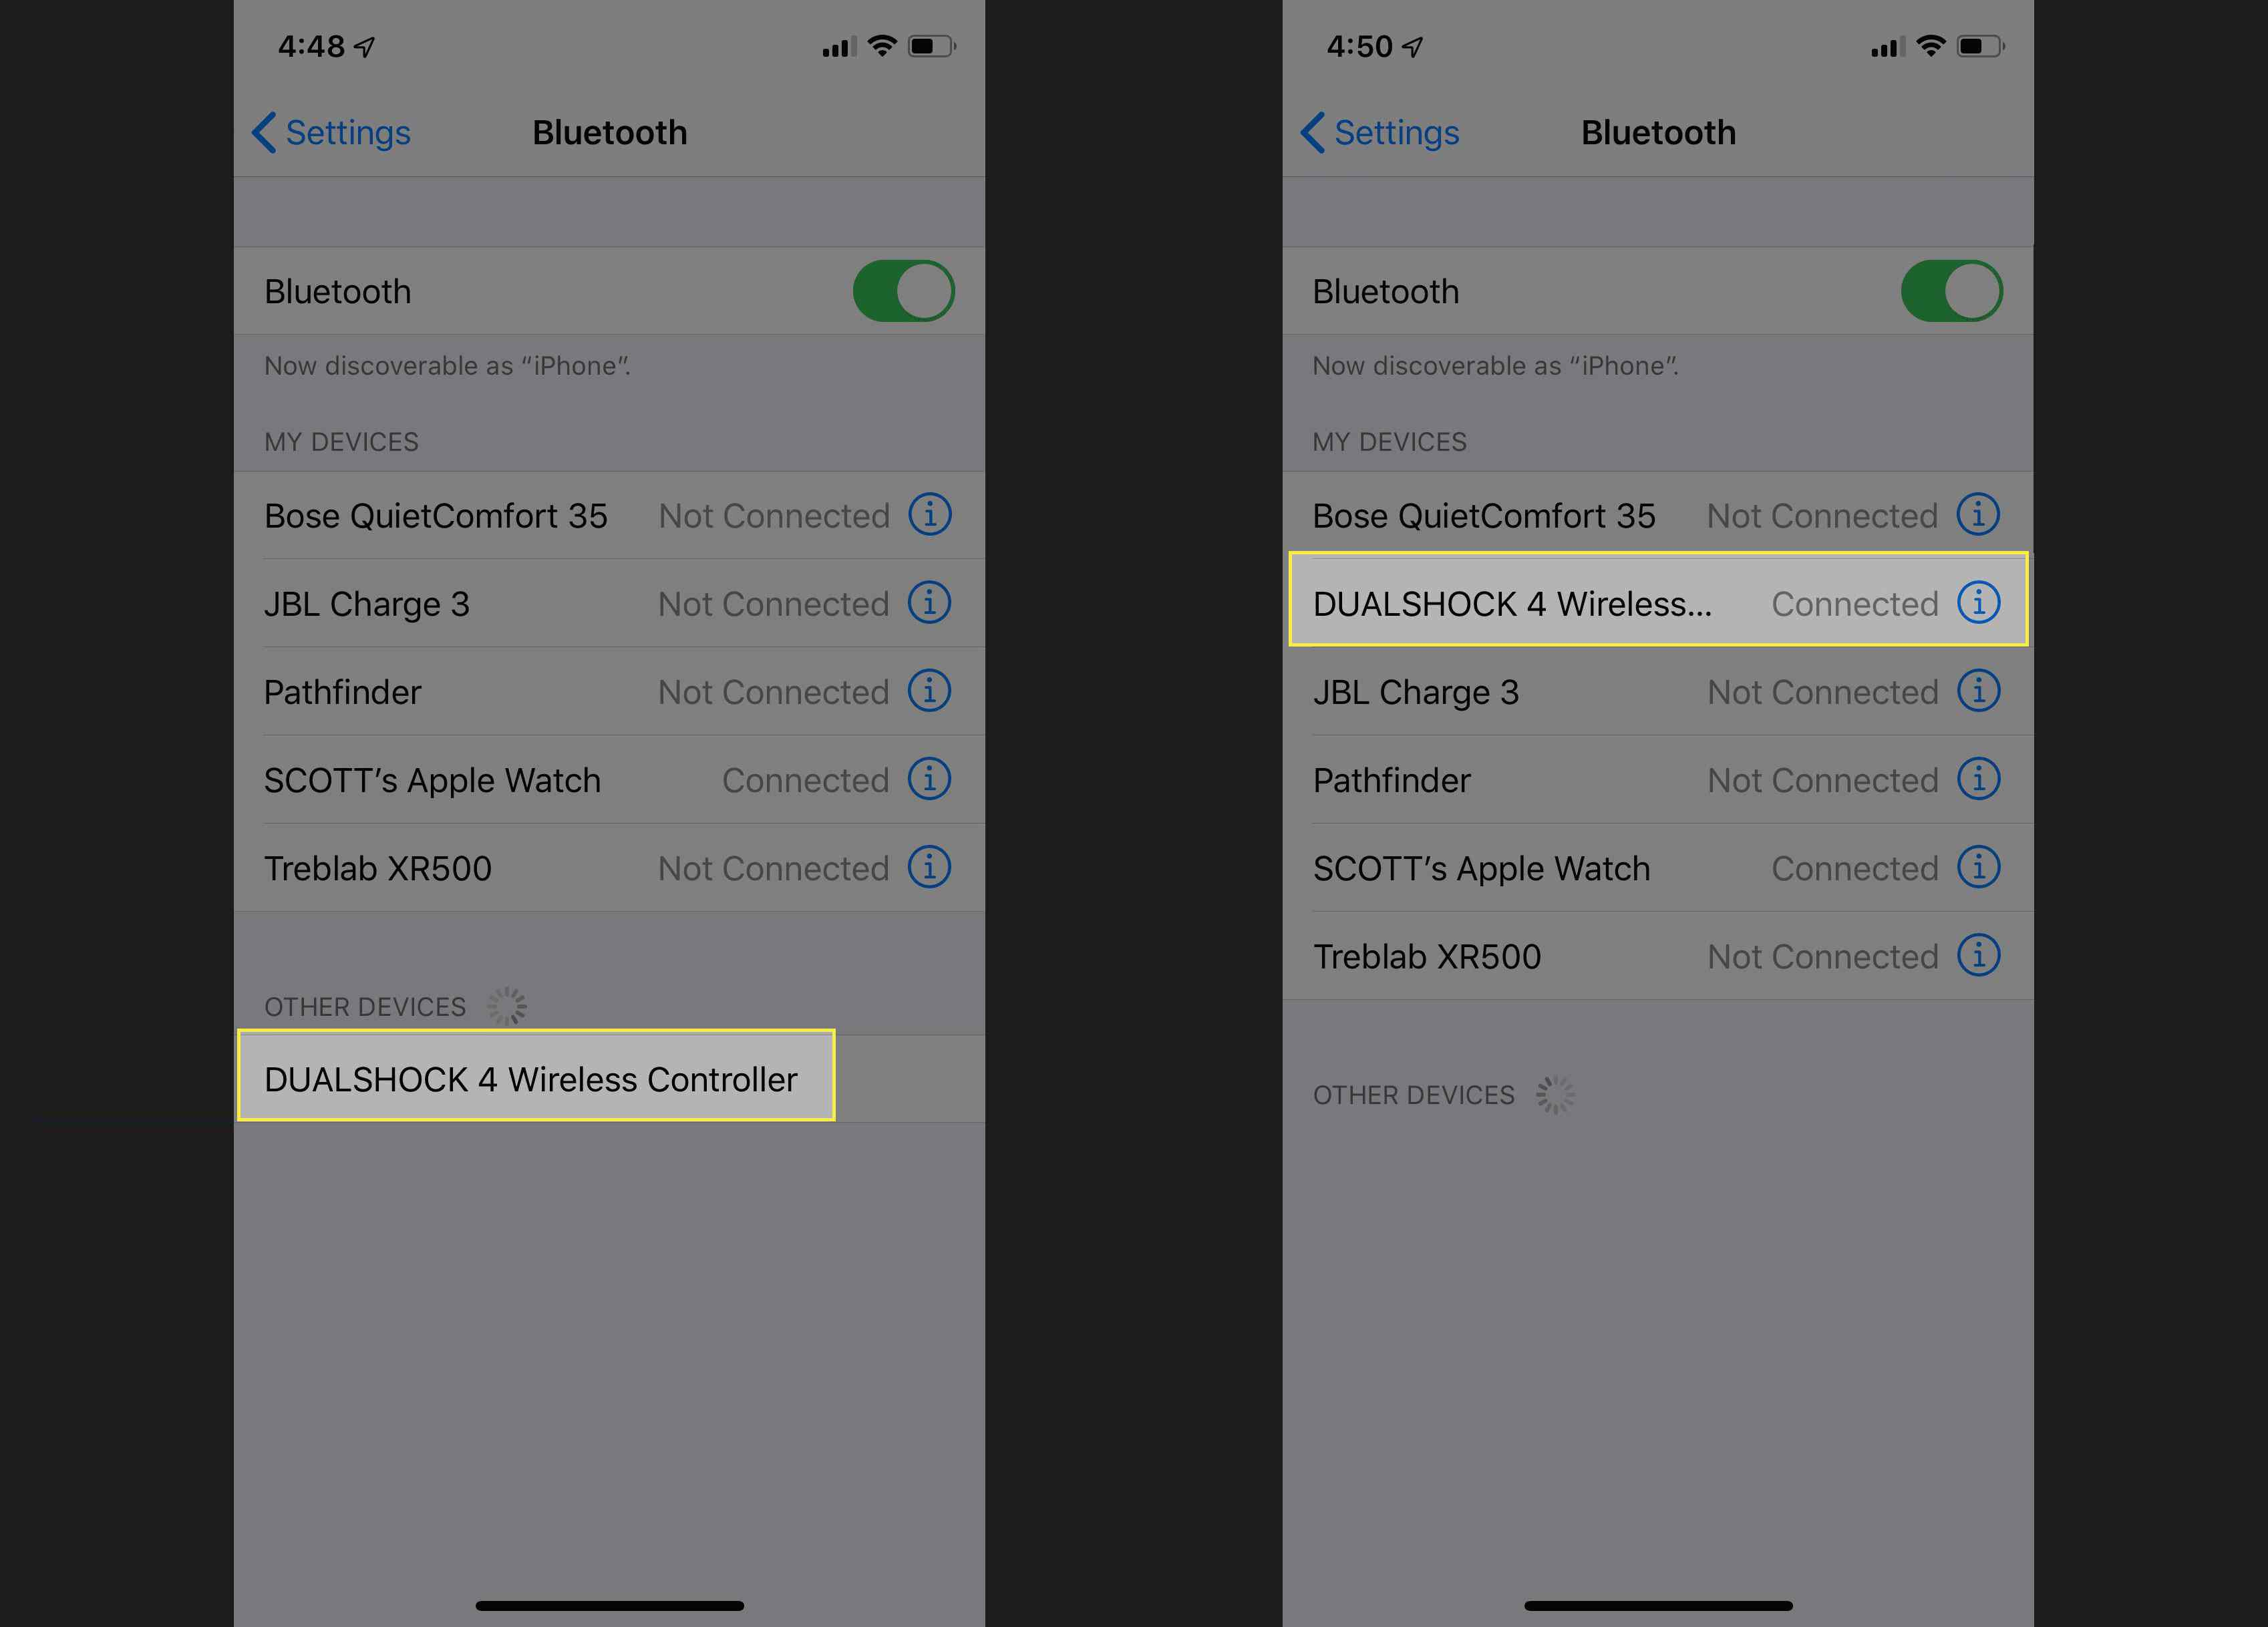 Linking a DualShock 4 to an iPhone